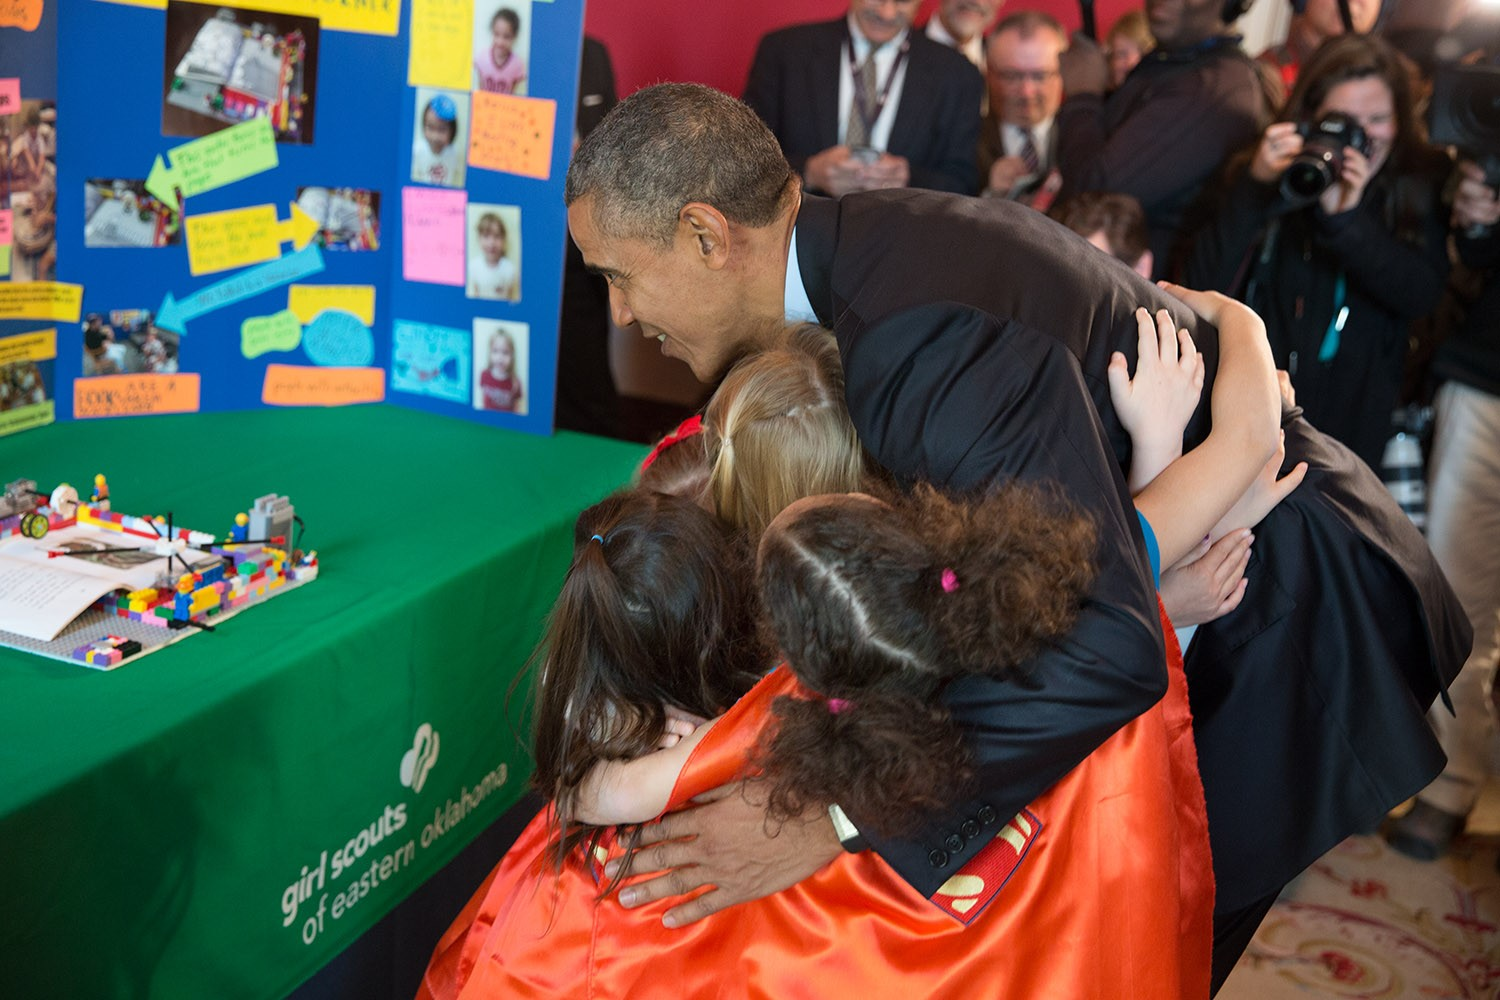 President Barack Obama hugs Emily Bergenroth, Alicia Cutter, Karissa Cheng, Addy O'Neal, and Emery Dodson, all six-year-old Girl Scouts, from Tulsa, Oklahoma after viewing their science exhibit during the 2015 White House Science Fair celebrating student winners of a broad range of science, technology, engineering, and math (STEM) competitions, in the Red Room, March 23, 2015. The girls used Lego pieces and designed a battery-powered page turner to help people who are paralyzed or have arthritis. (Official White House Photo by Pete Souza)